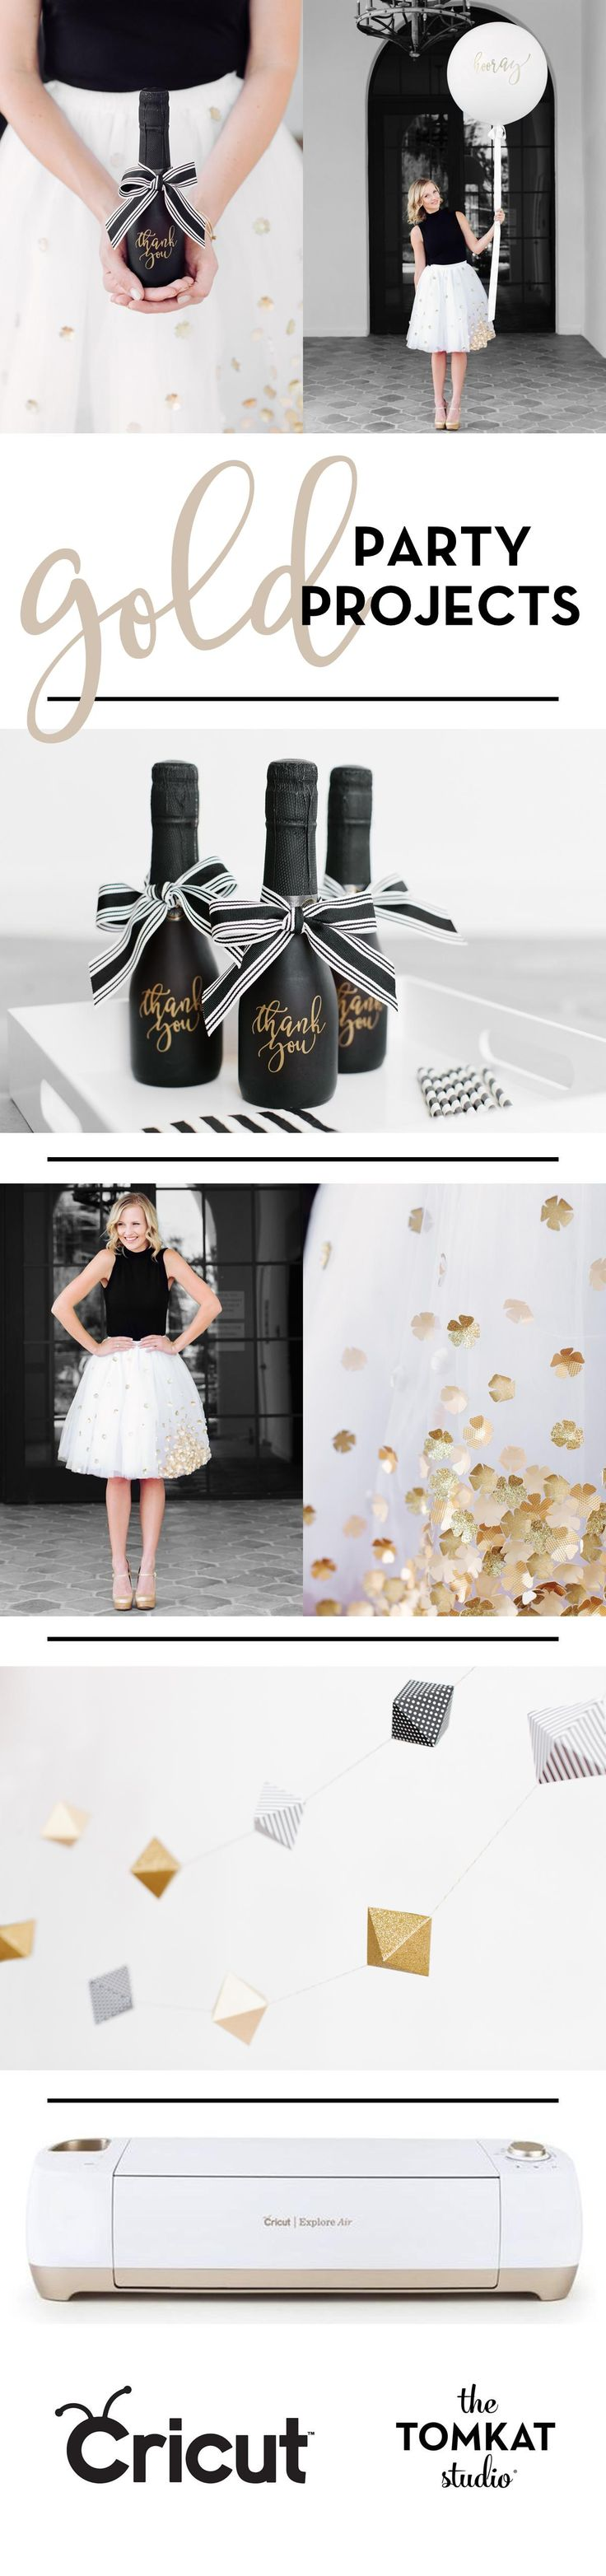 best images about party planning playbook on pinterest